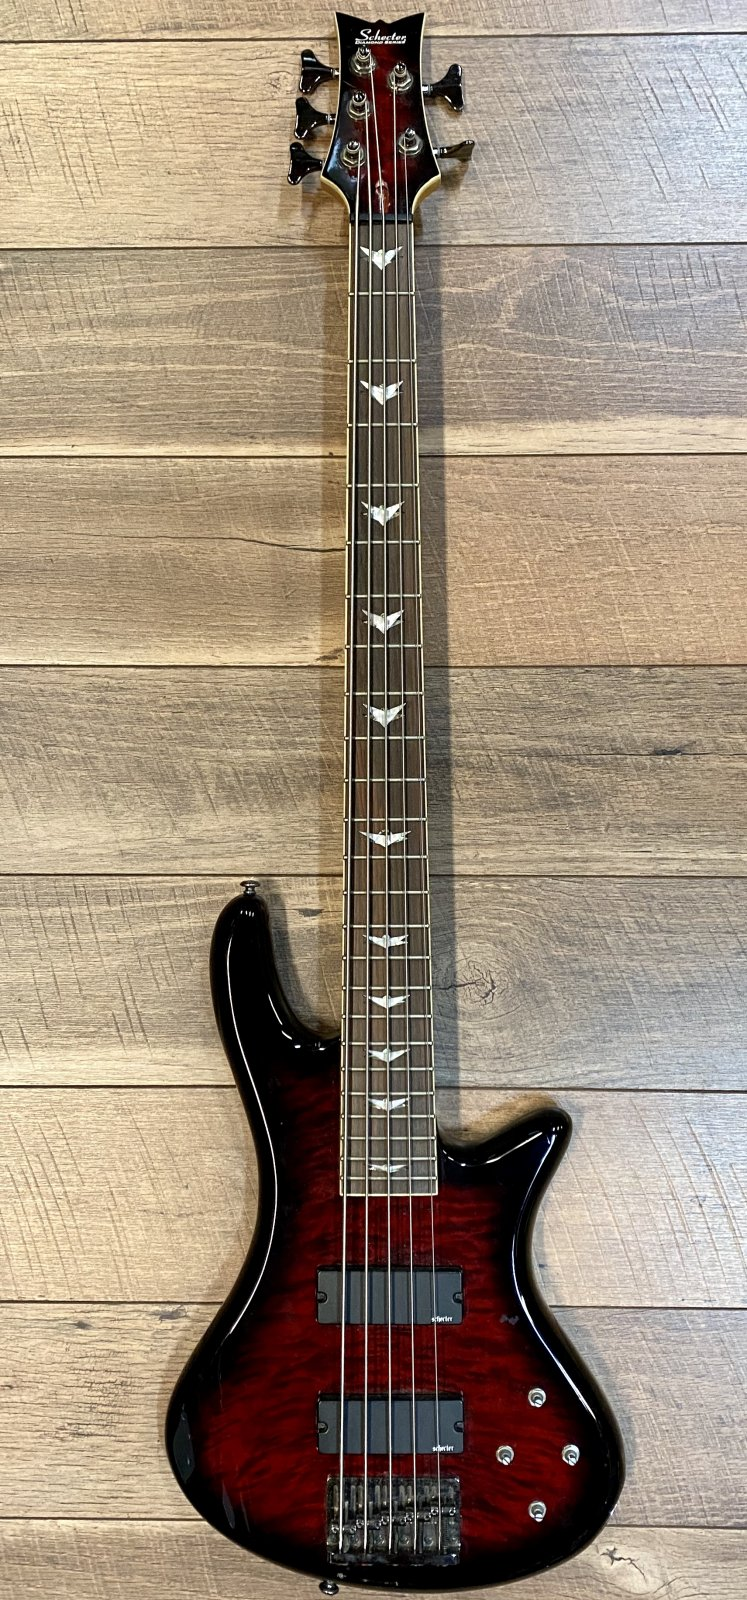 USED - Schecter Stiletto Studio 5-String Bass Guitar